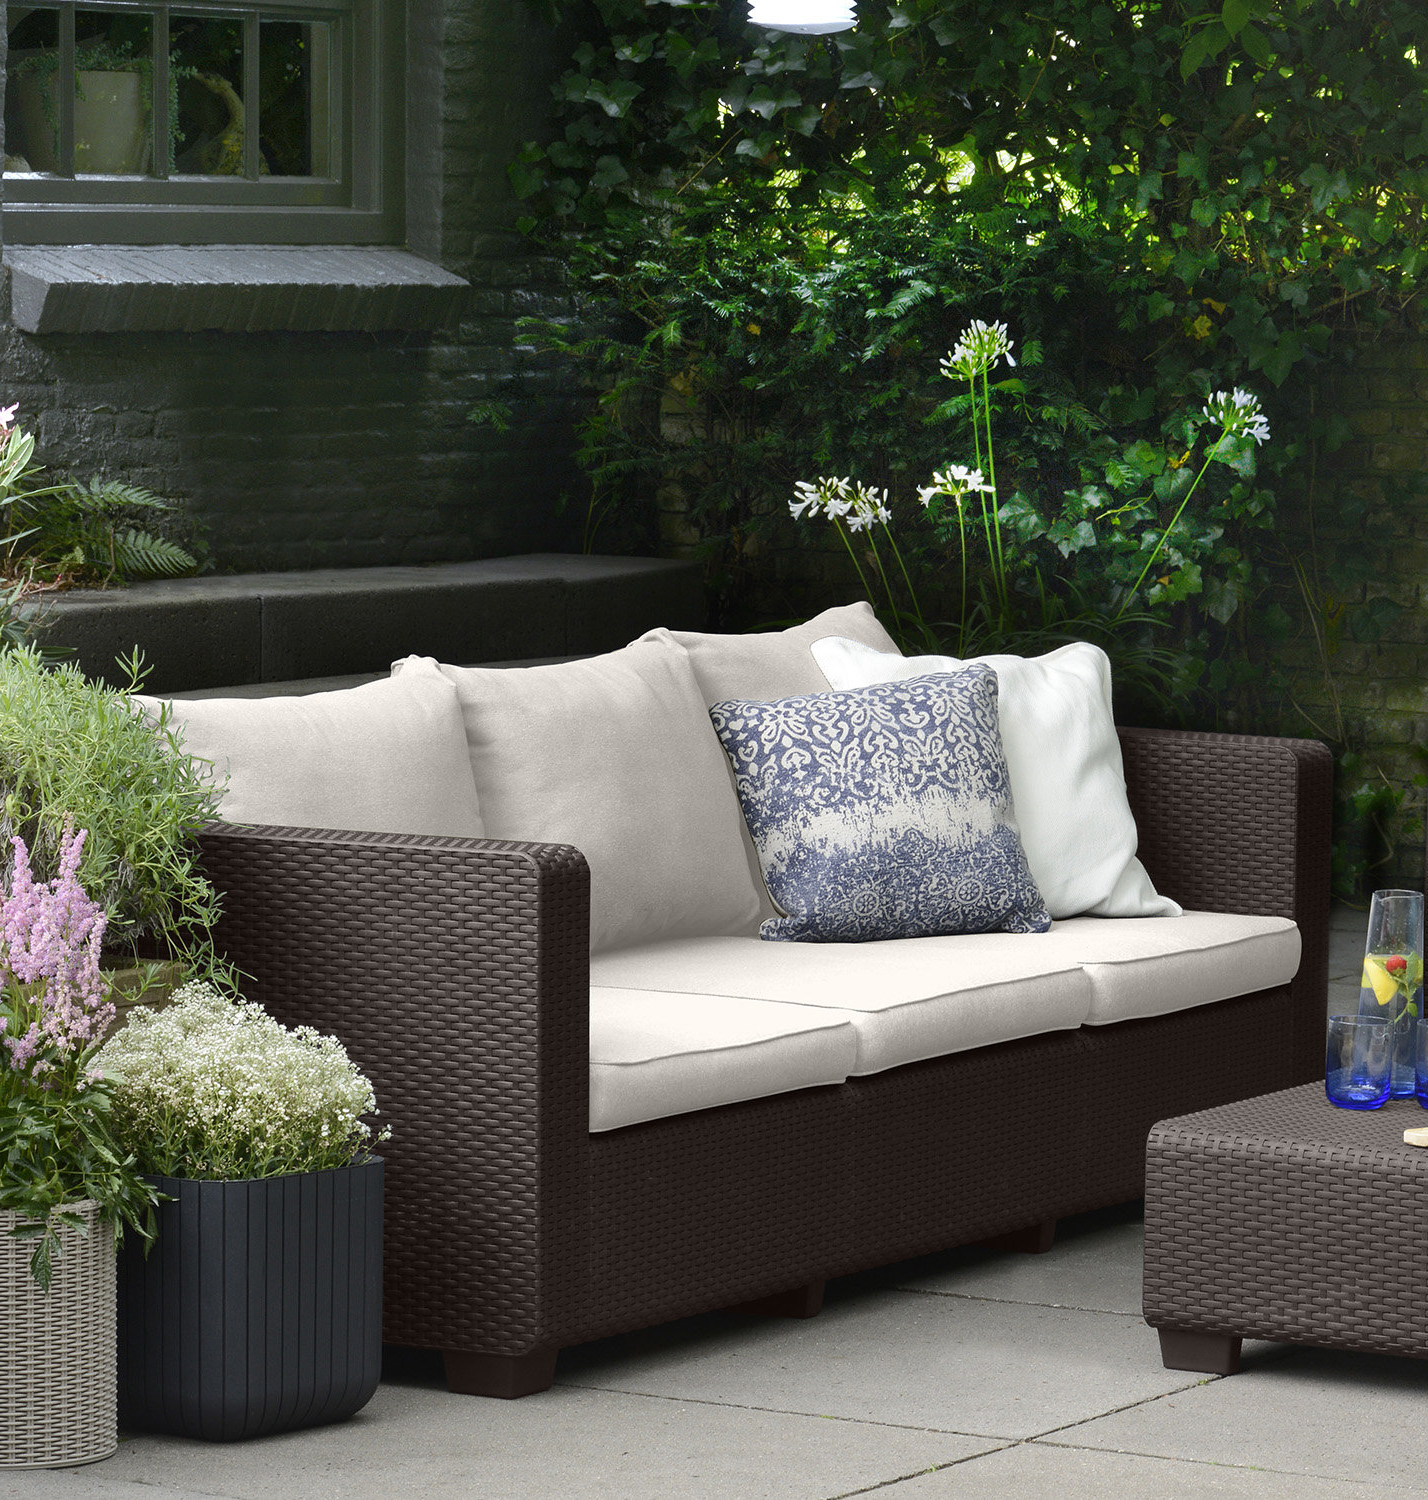 Silloth Patio Sofas With Cushions Regarding Current Halloran Patio Sofa With Sunbrella Cushions (View 14 of 20)